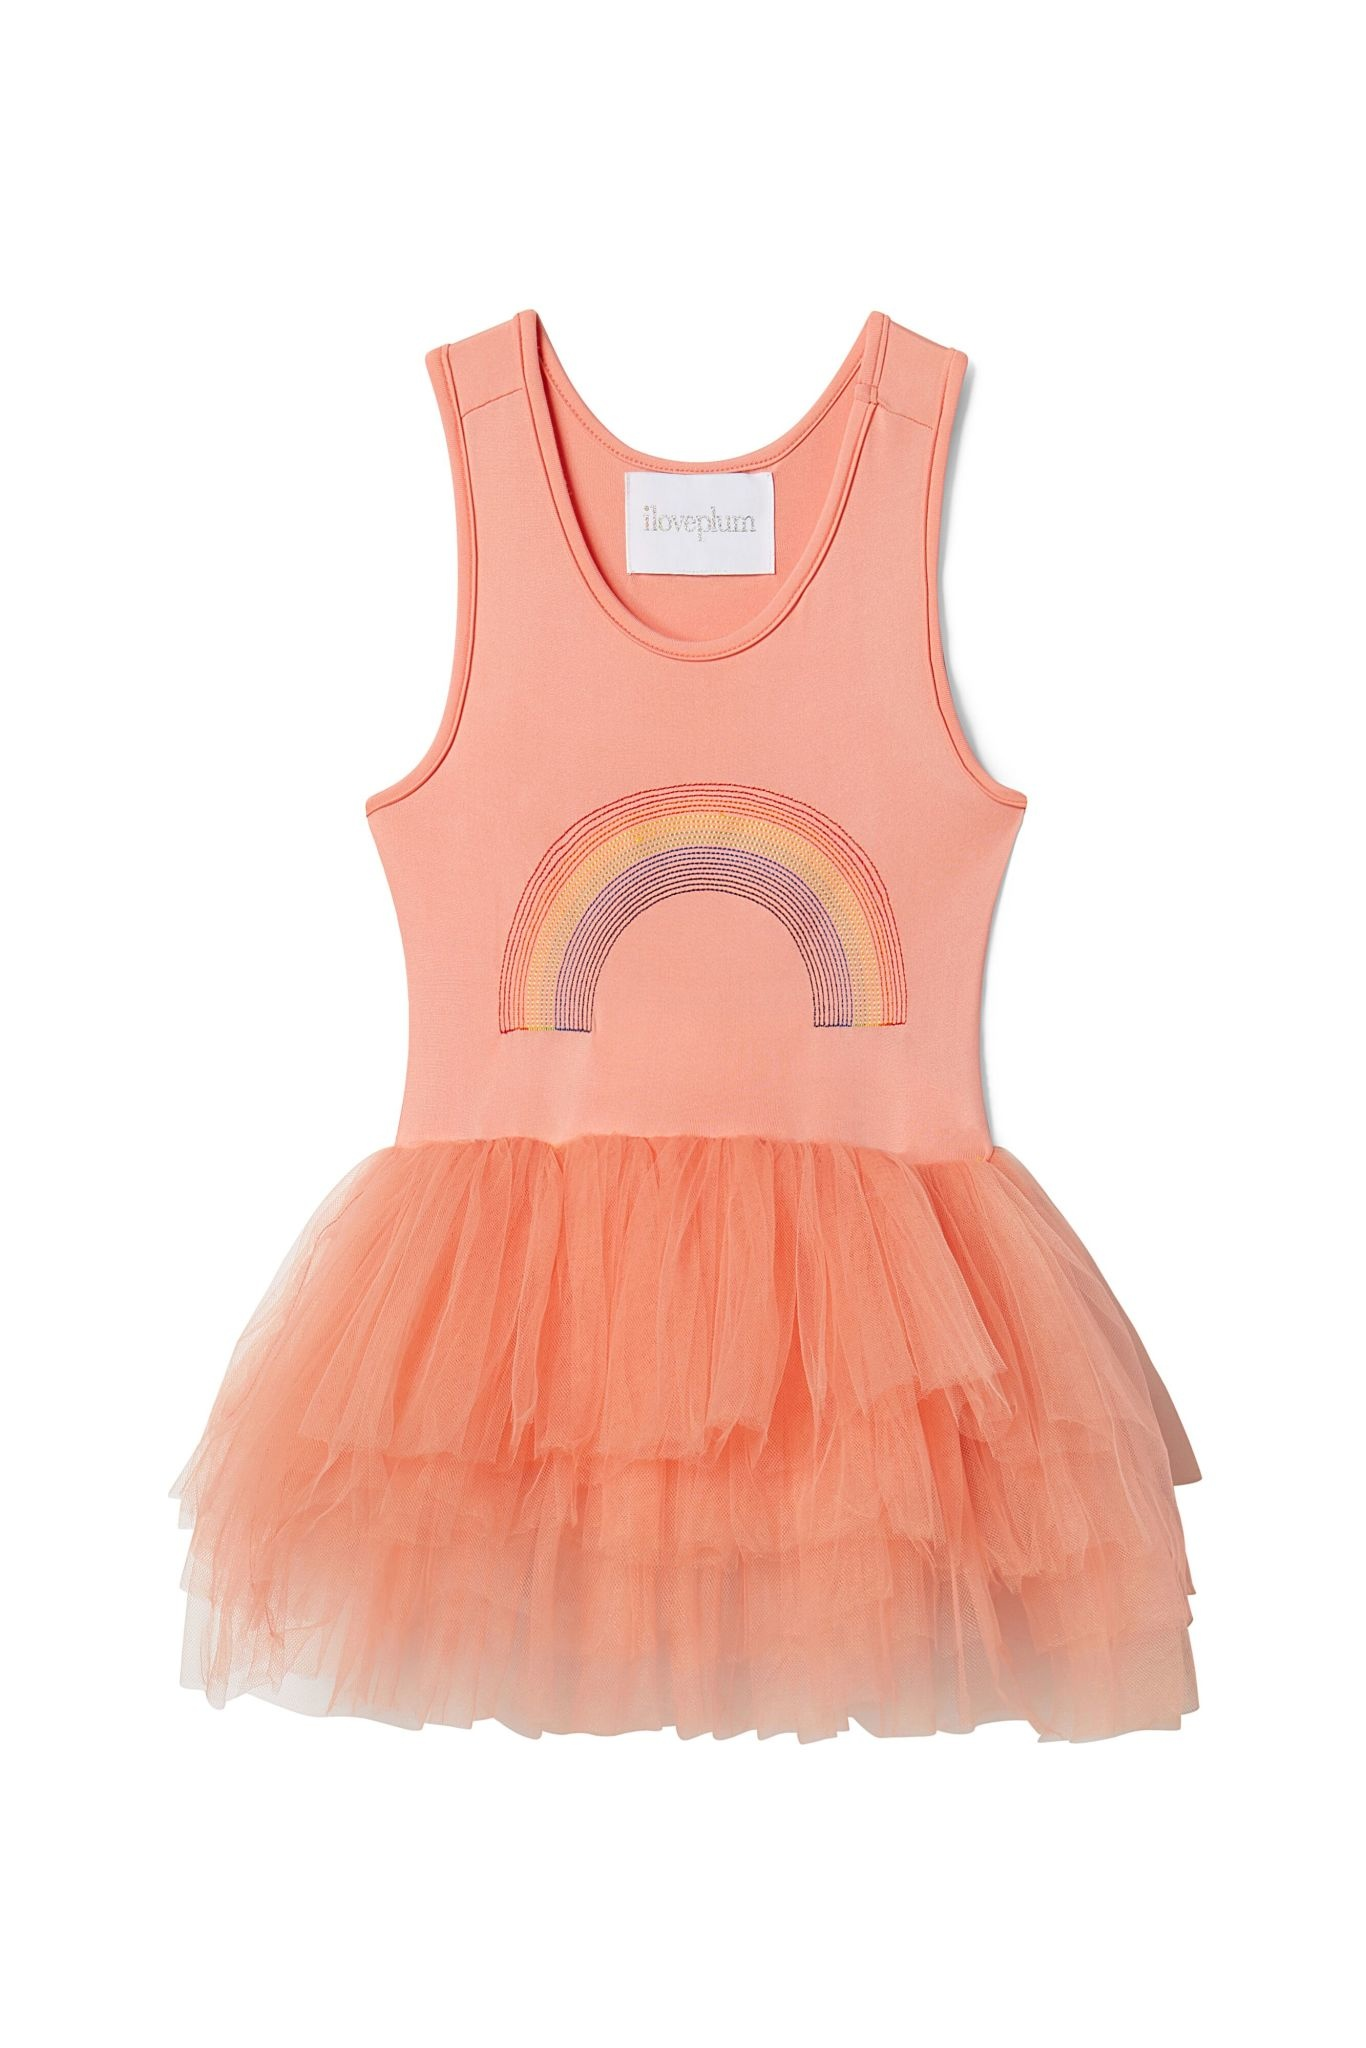 PLUM B.A.E. Rainbow Tutu Dress